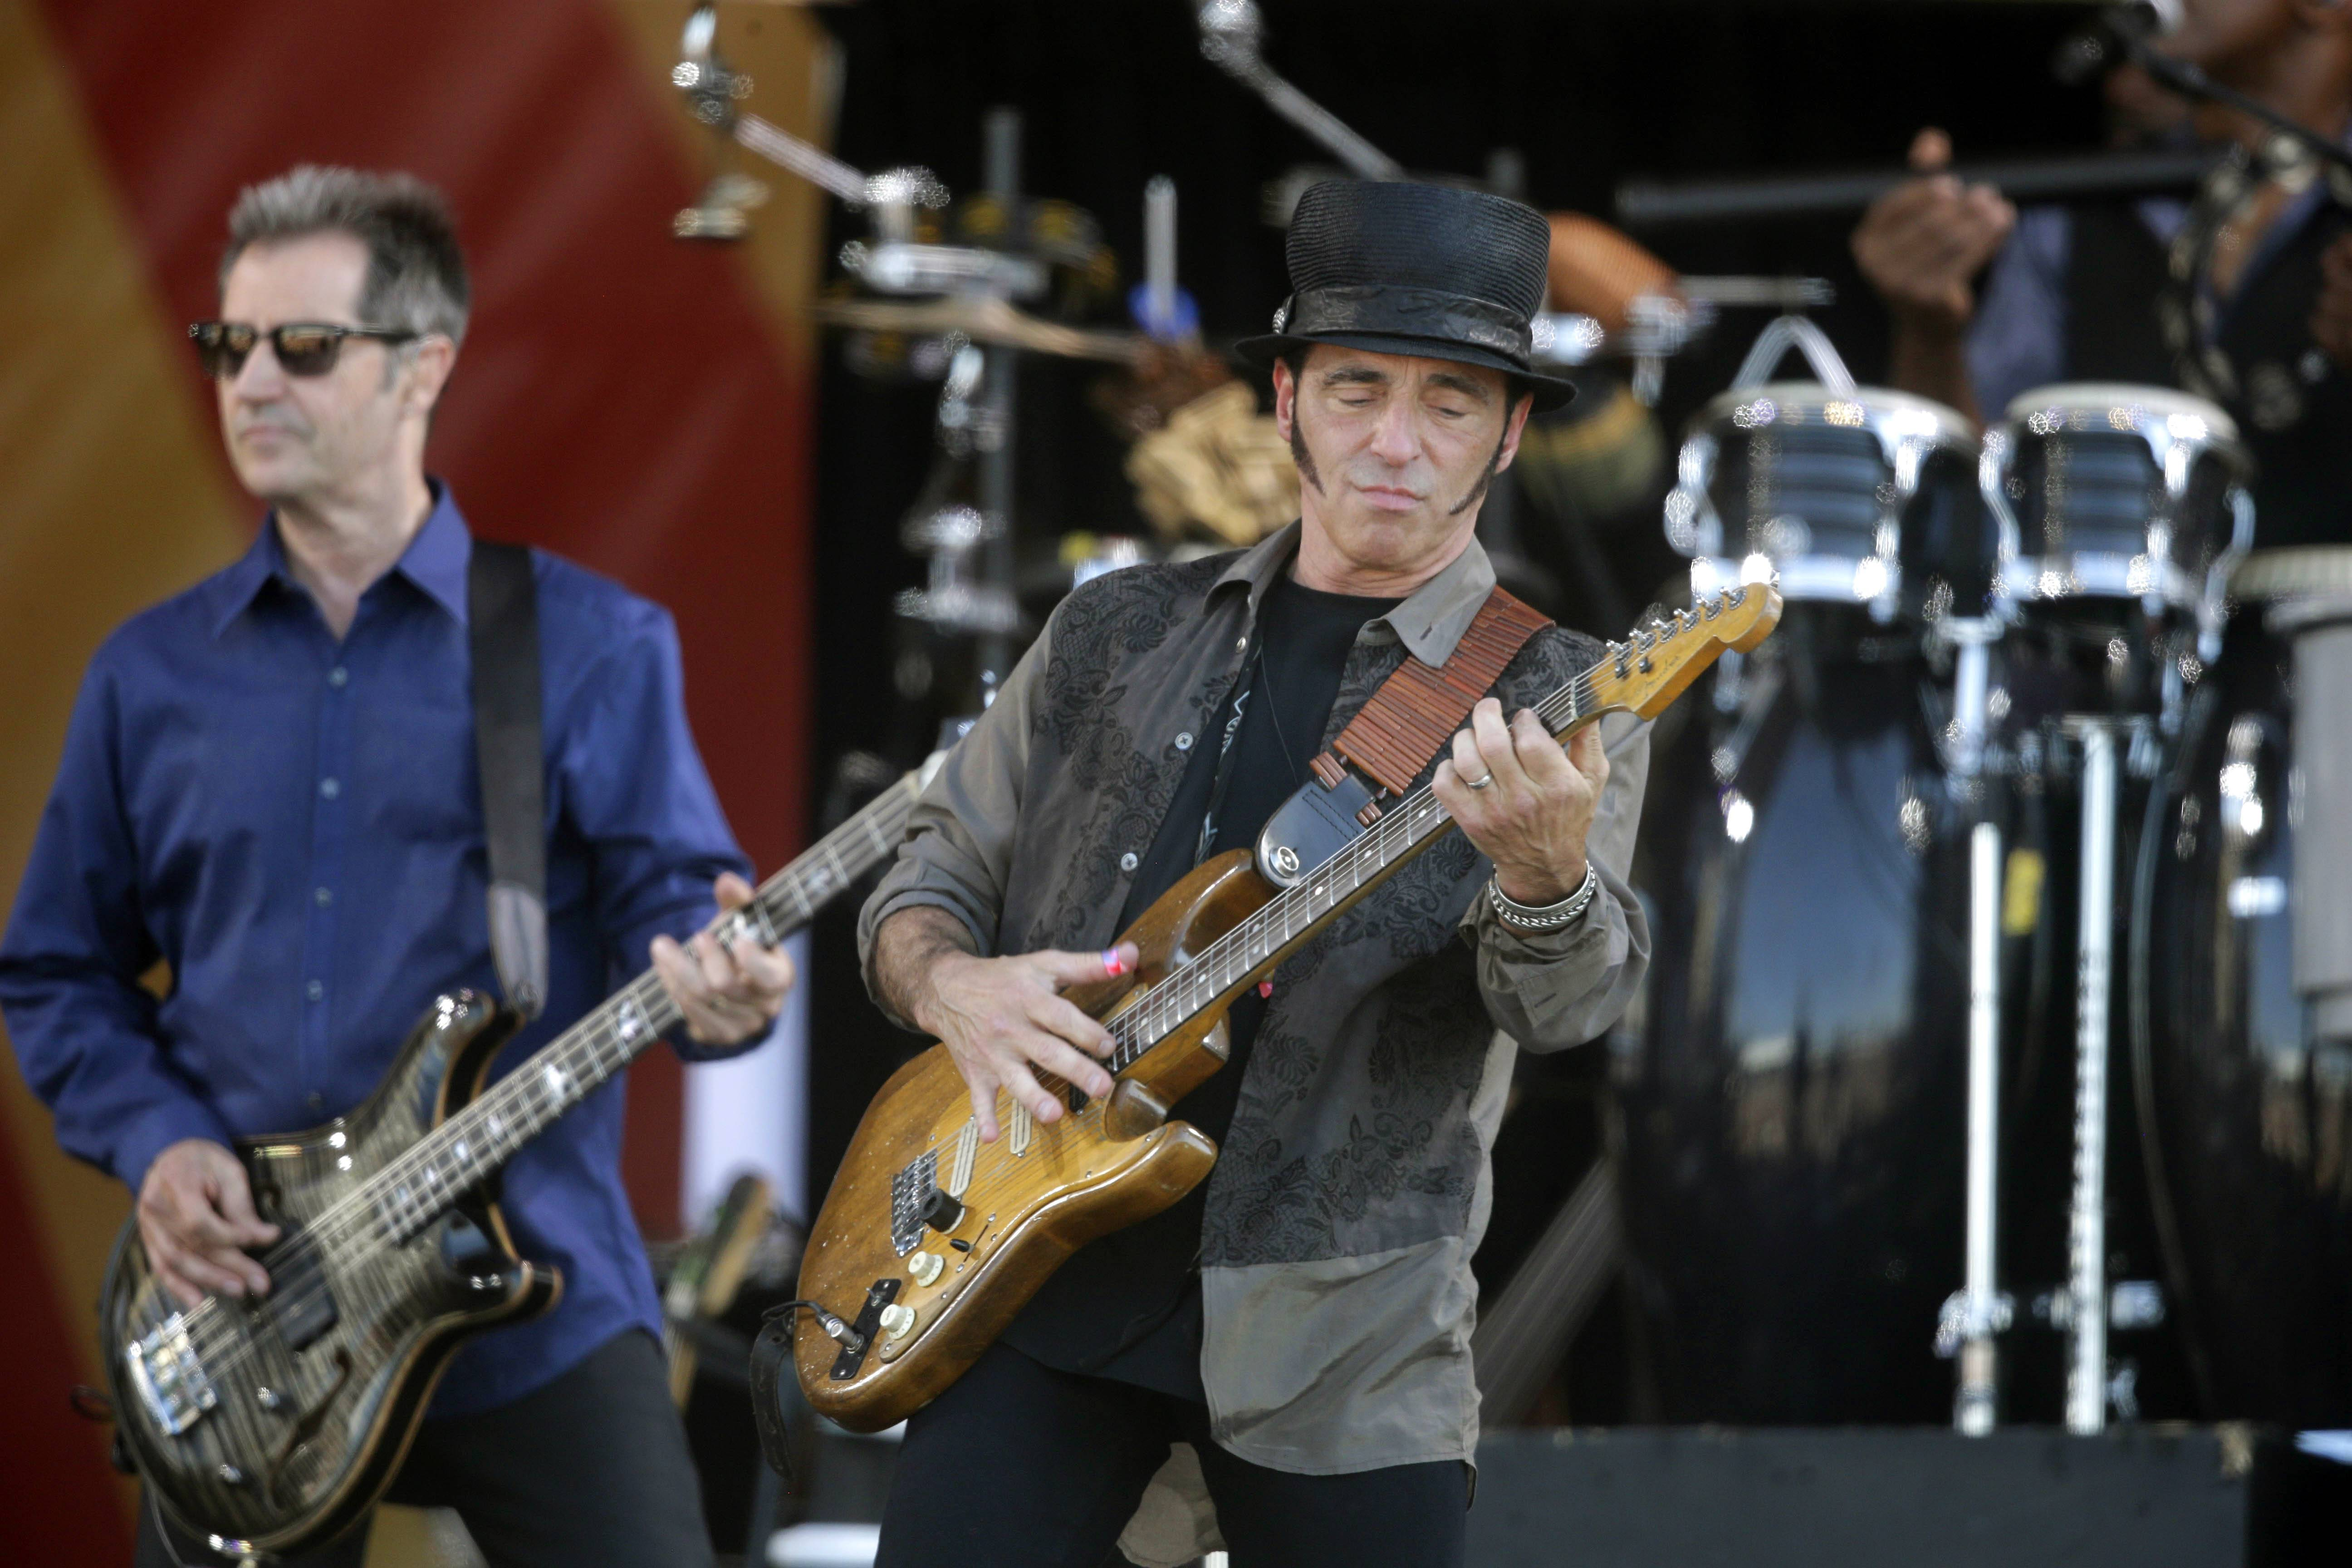 Nils Lofgren, center, performed with Bruce Springsteen and the E Street Band at the New Orleans Jazz and Heritage Festival in May. Lofgren has forged a relatively unique rock 'n' roll niche through a willingness to sublimate his ego and take on supporting roles with Springsteen, Neil Young and Ringo Starr in addition to writing and recording his own music.